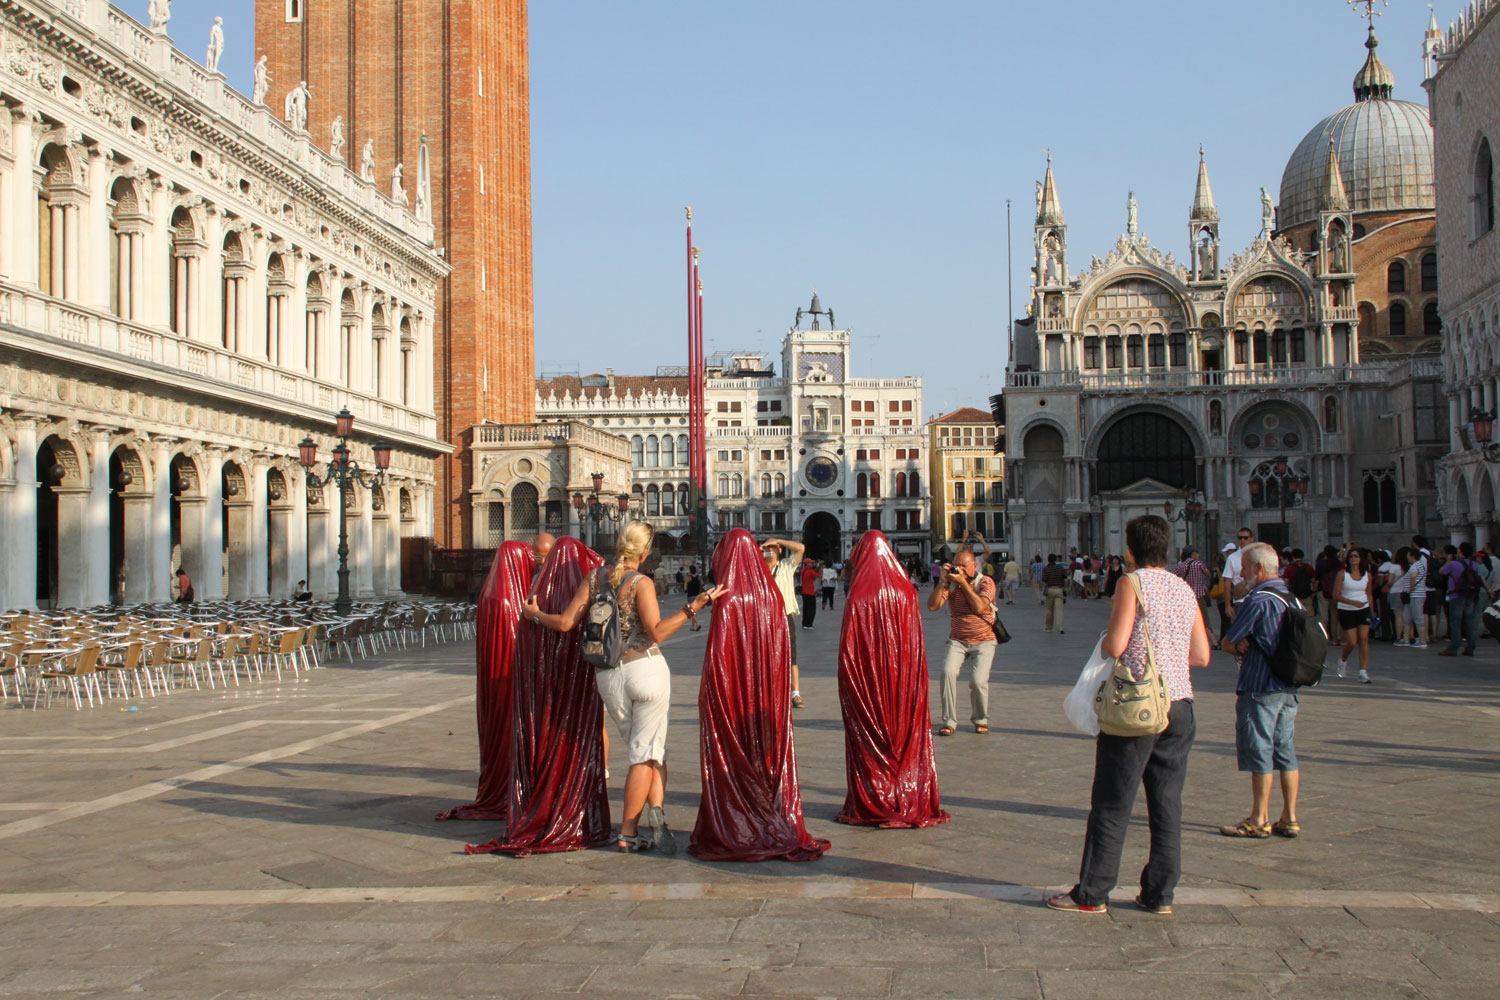 public biennale de arte venice international world light art arts design exhibition sculpture guardians of time manfred kielnhofer 4319